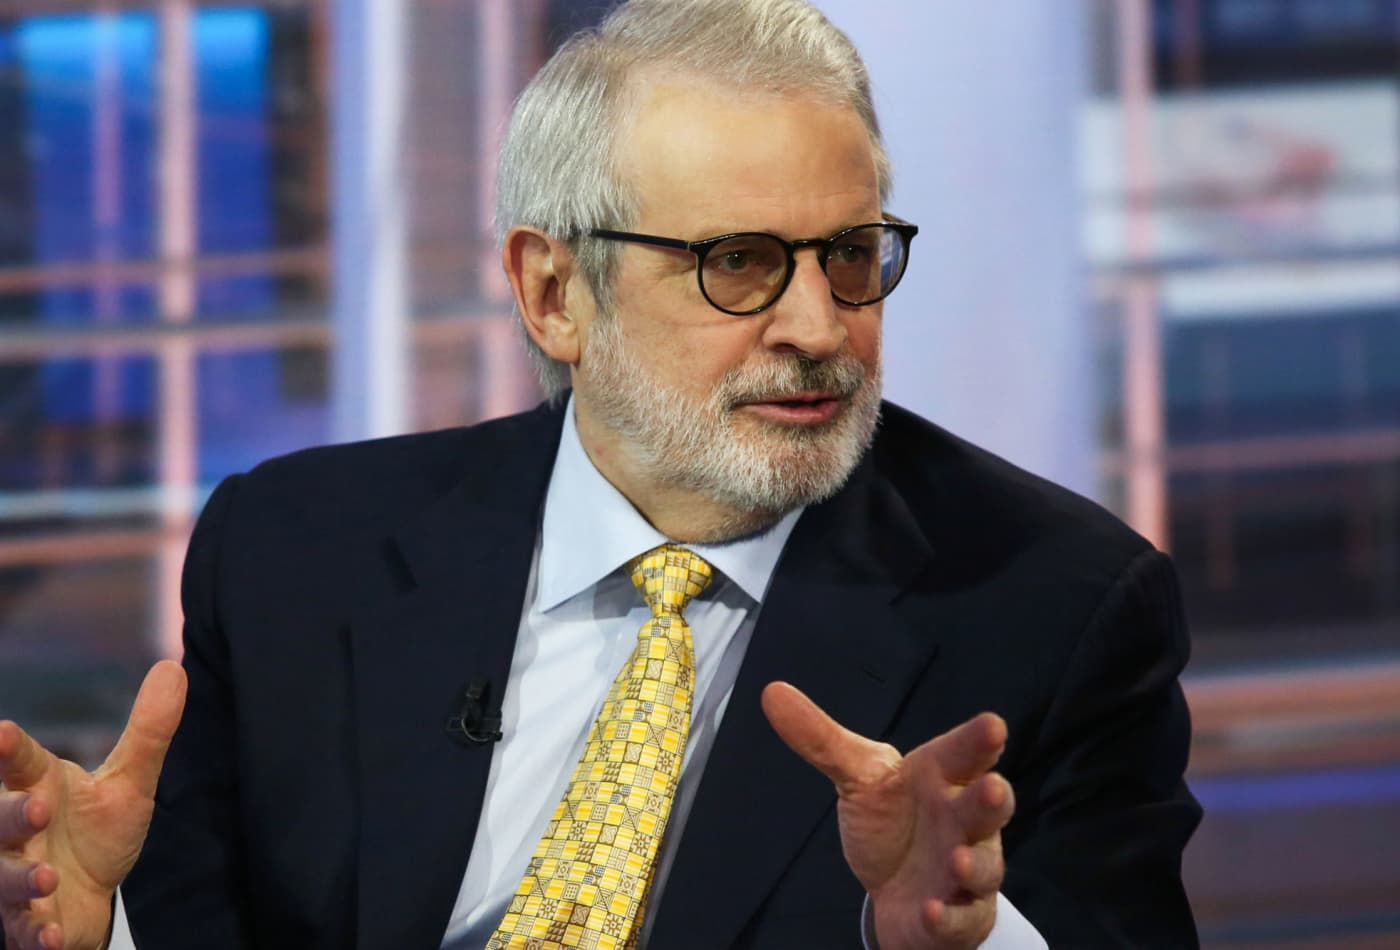 David Stockman: Epic downturn is here, brace for 40% market plunge